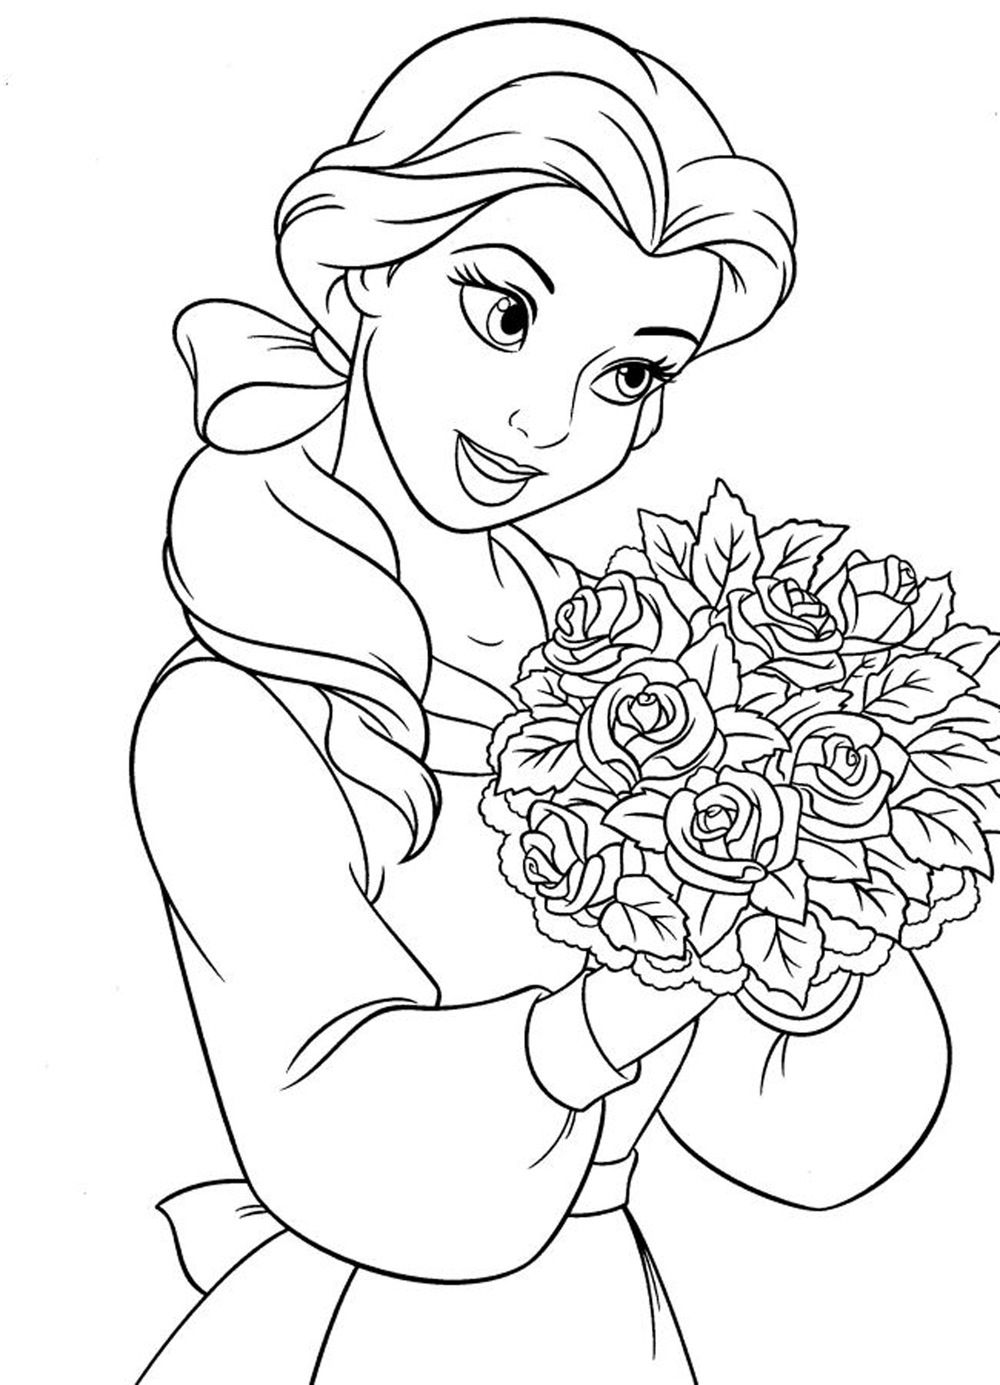 coloring pictures of princesses princess coloring pages for girls free large images of pictures coloring princesses